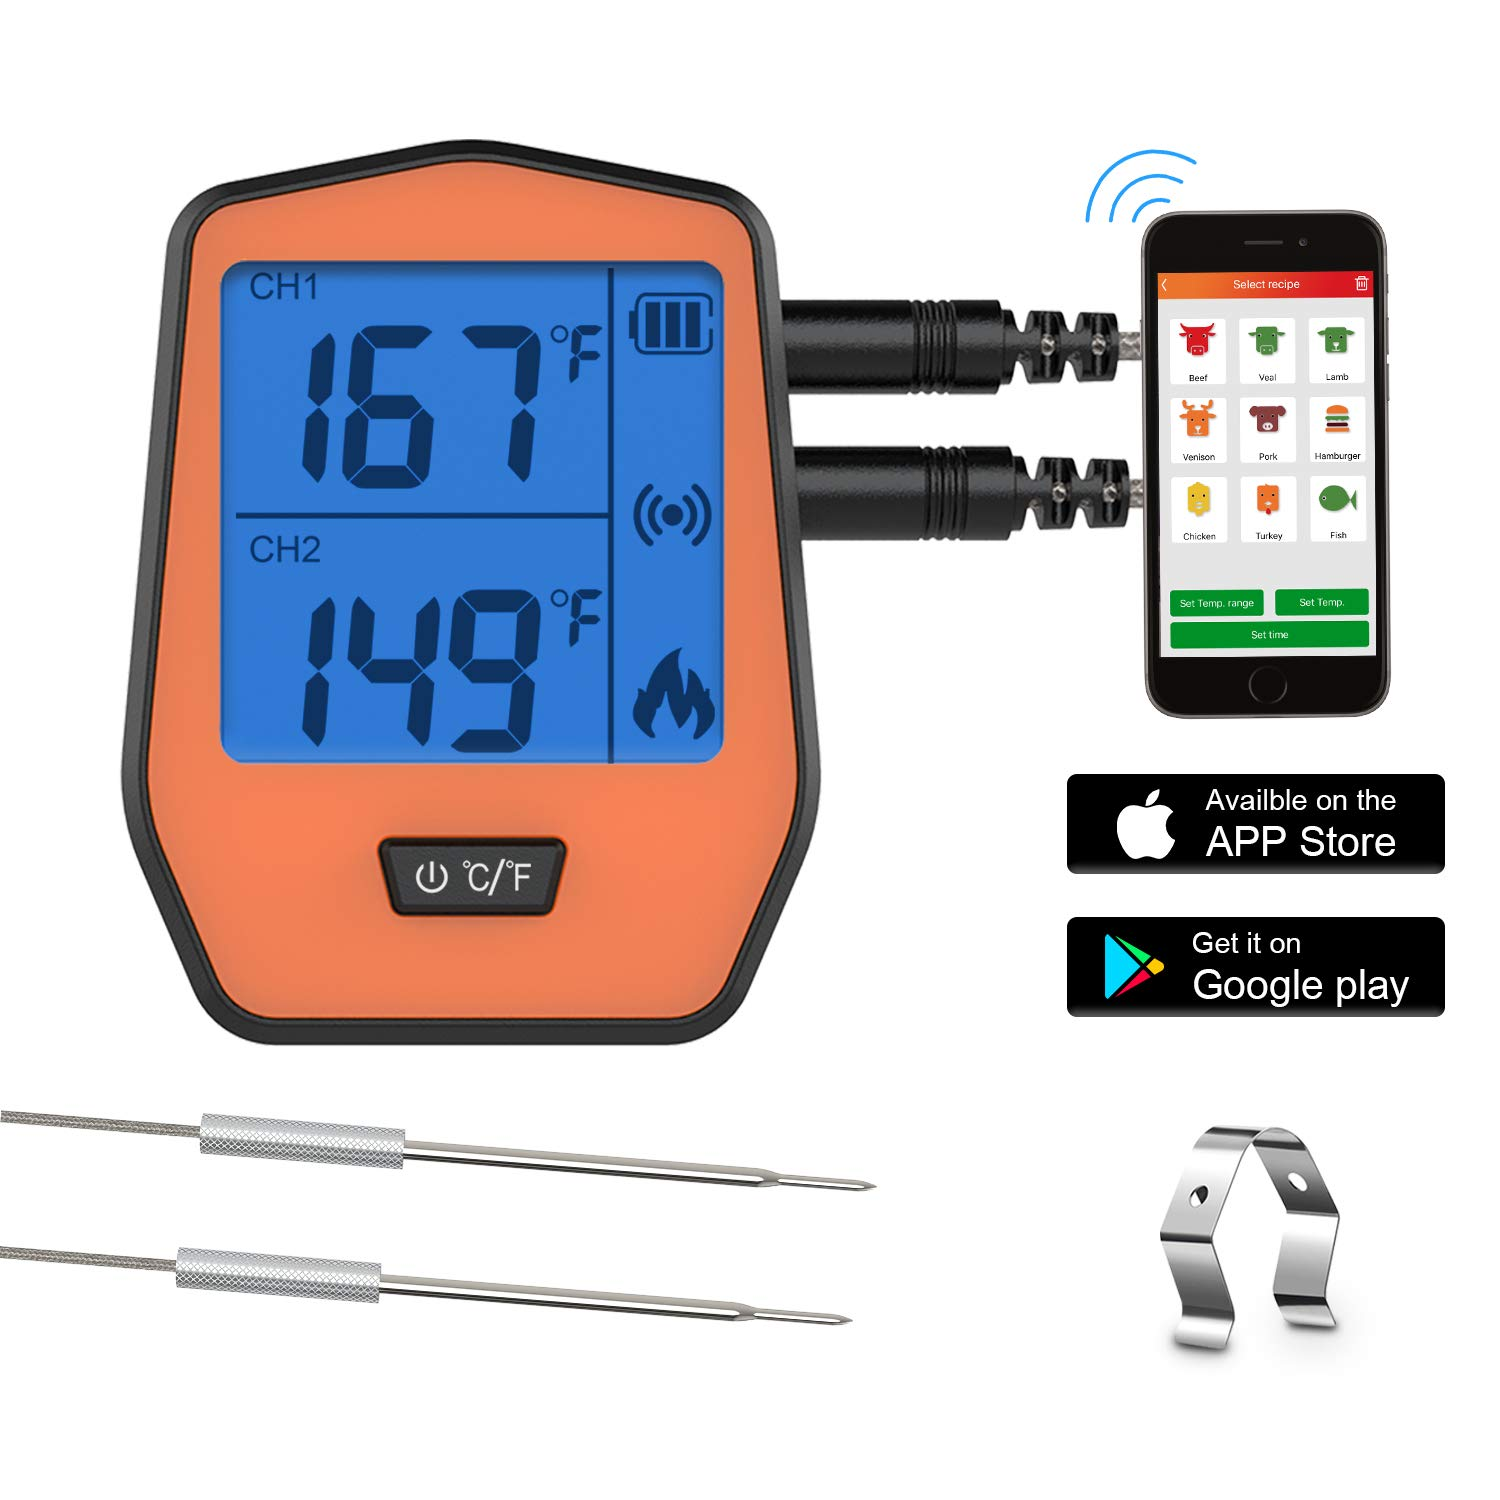 Wireless Remote Digital Meat Thermometer - Smart Cooking Food Thermometer for Candy BBQ Grilling Oven Kitchen Grill with Dual Probe,Support iOS & Android[2019 Latest]